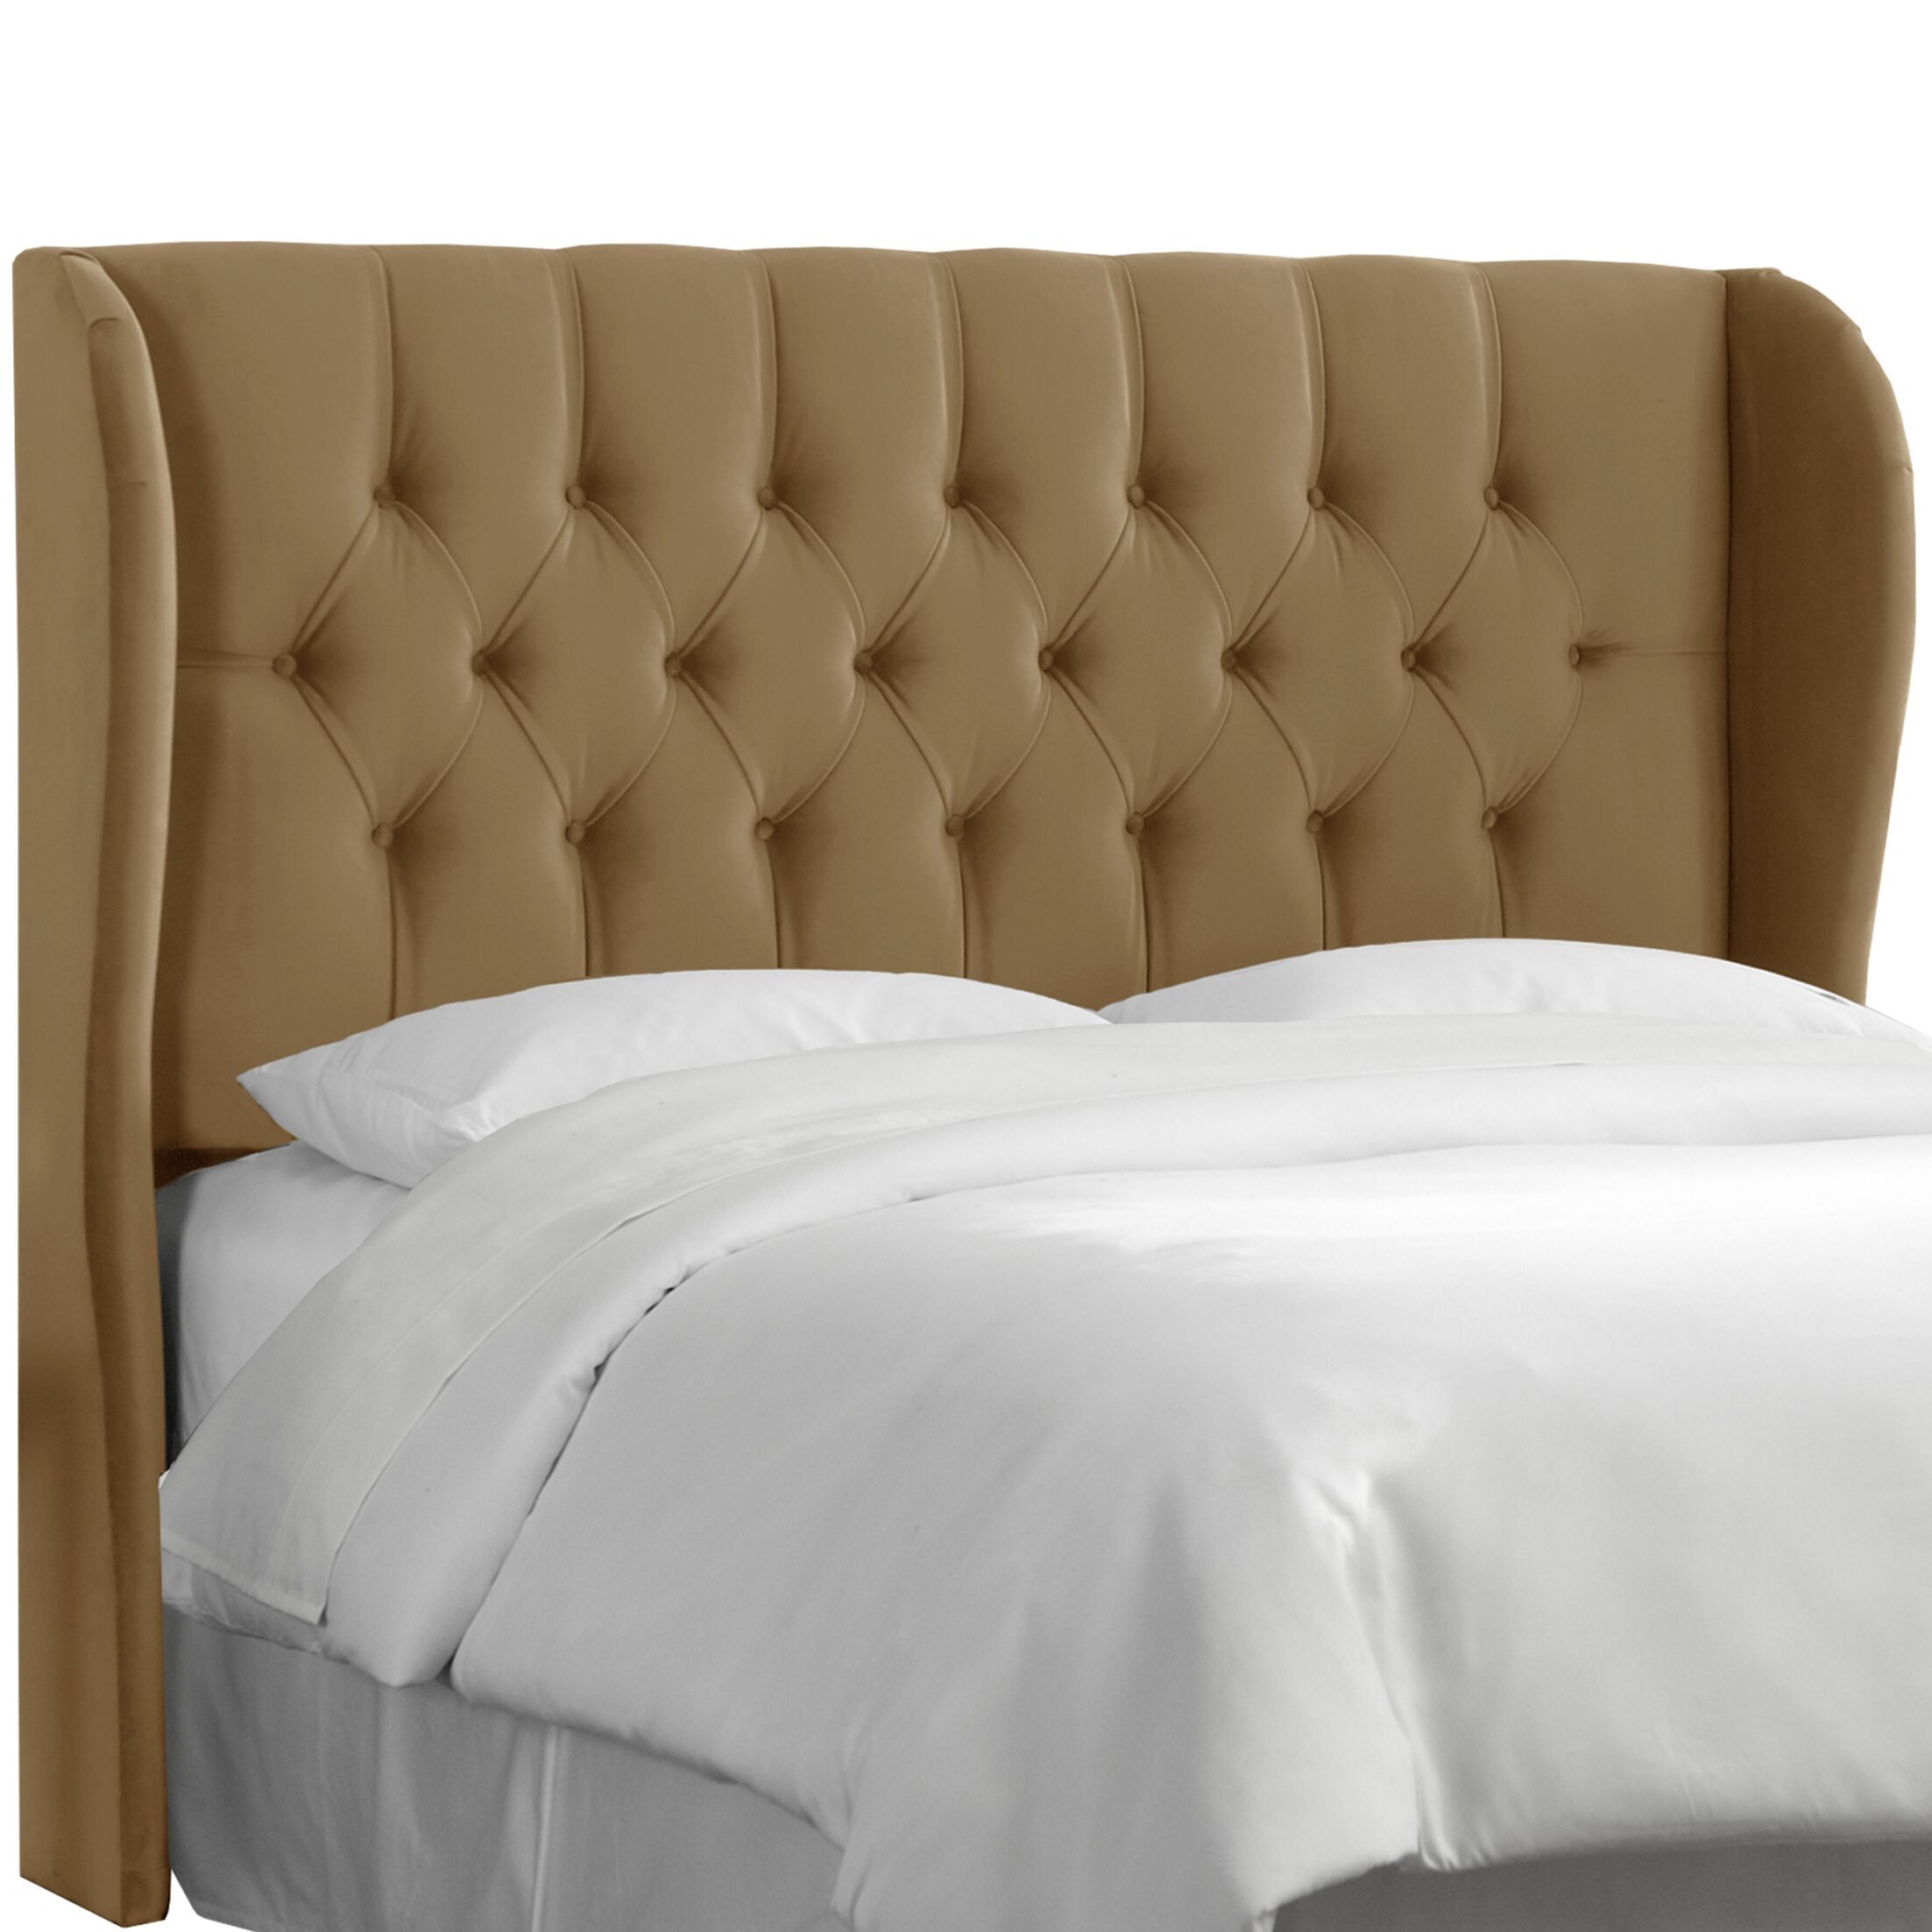 Upholstered Wingback Headboard Upholstery: Regal Sand, Size: Queen